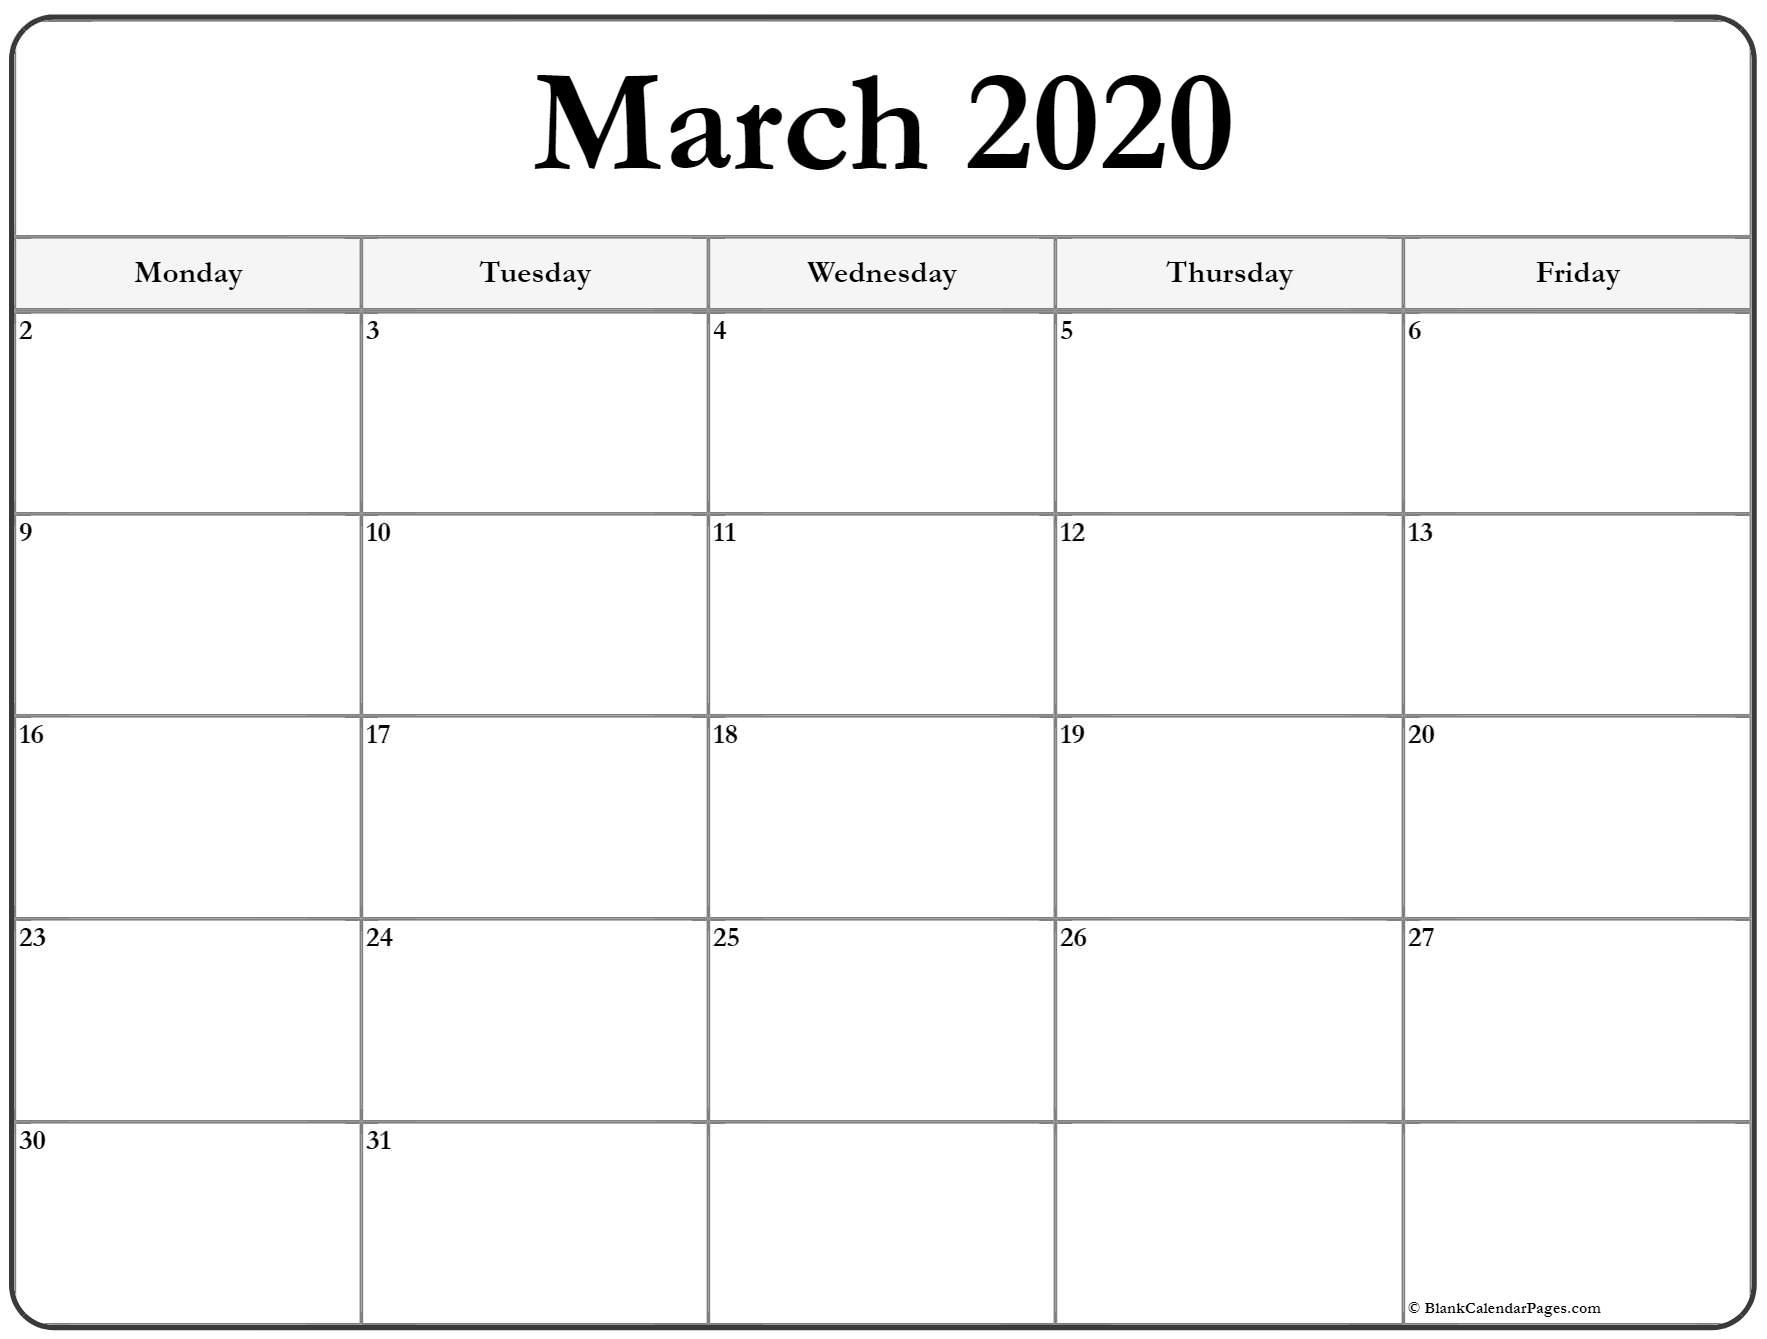 March 2020 Monday Calendar | Monday To Sunday throughout 2020 Calendar That Shows Only Monday Through Friday